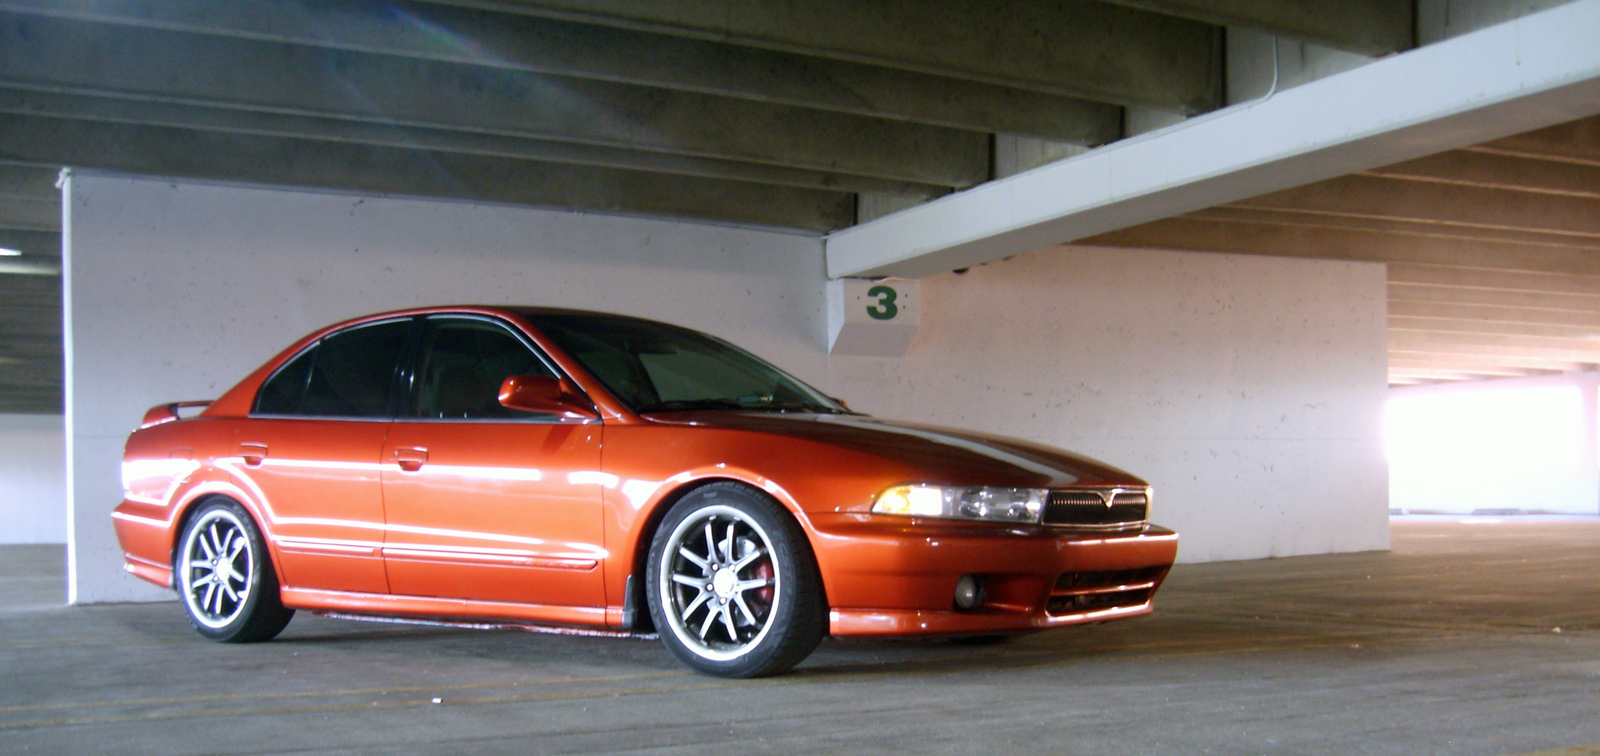 Mitsubishi Galant 3.0 #1 added by: Charissa Marnell